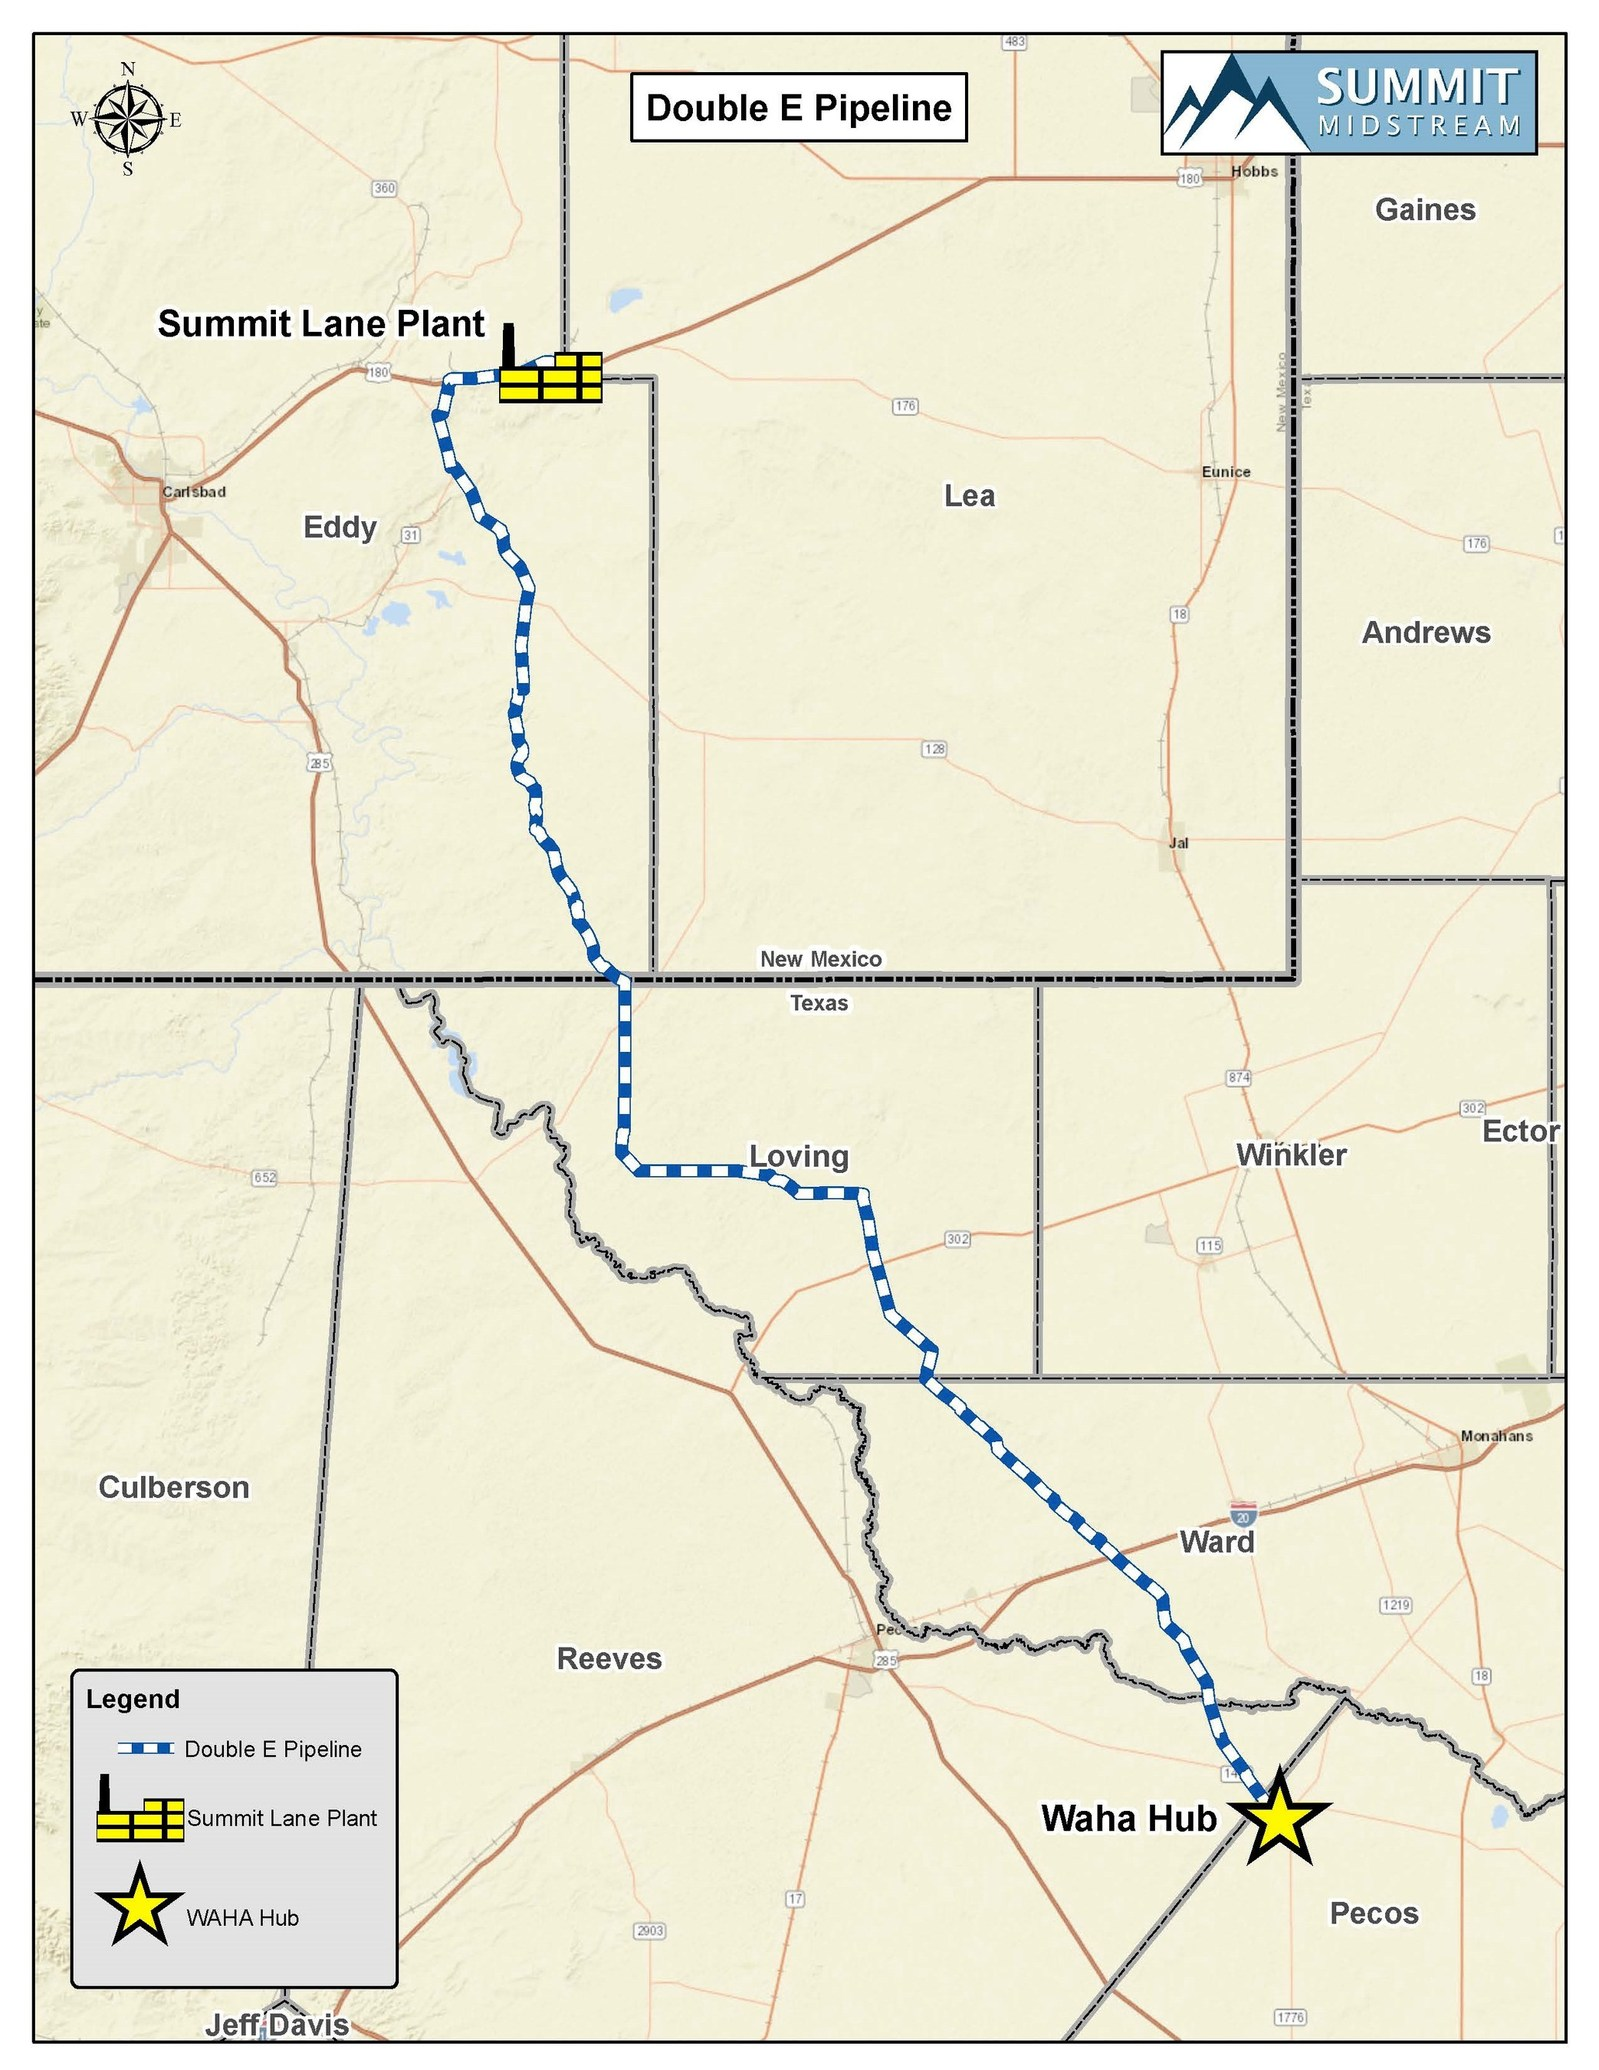 Summit midstream holds open season for double e natgas pipeline summit midstream holds open season for double e natgas pipeline oil gas 360 biocorpaavc